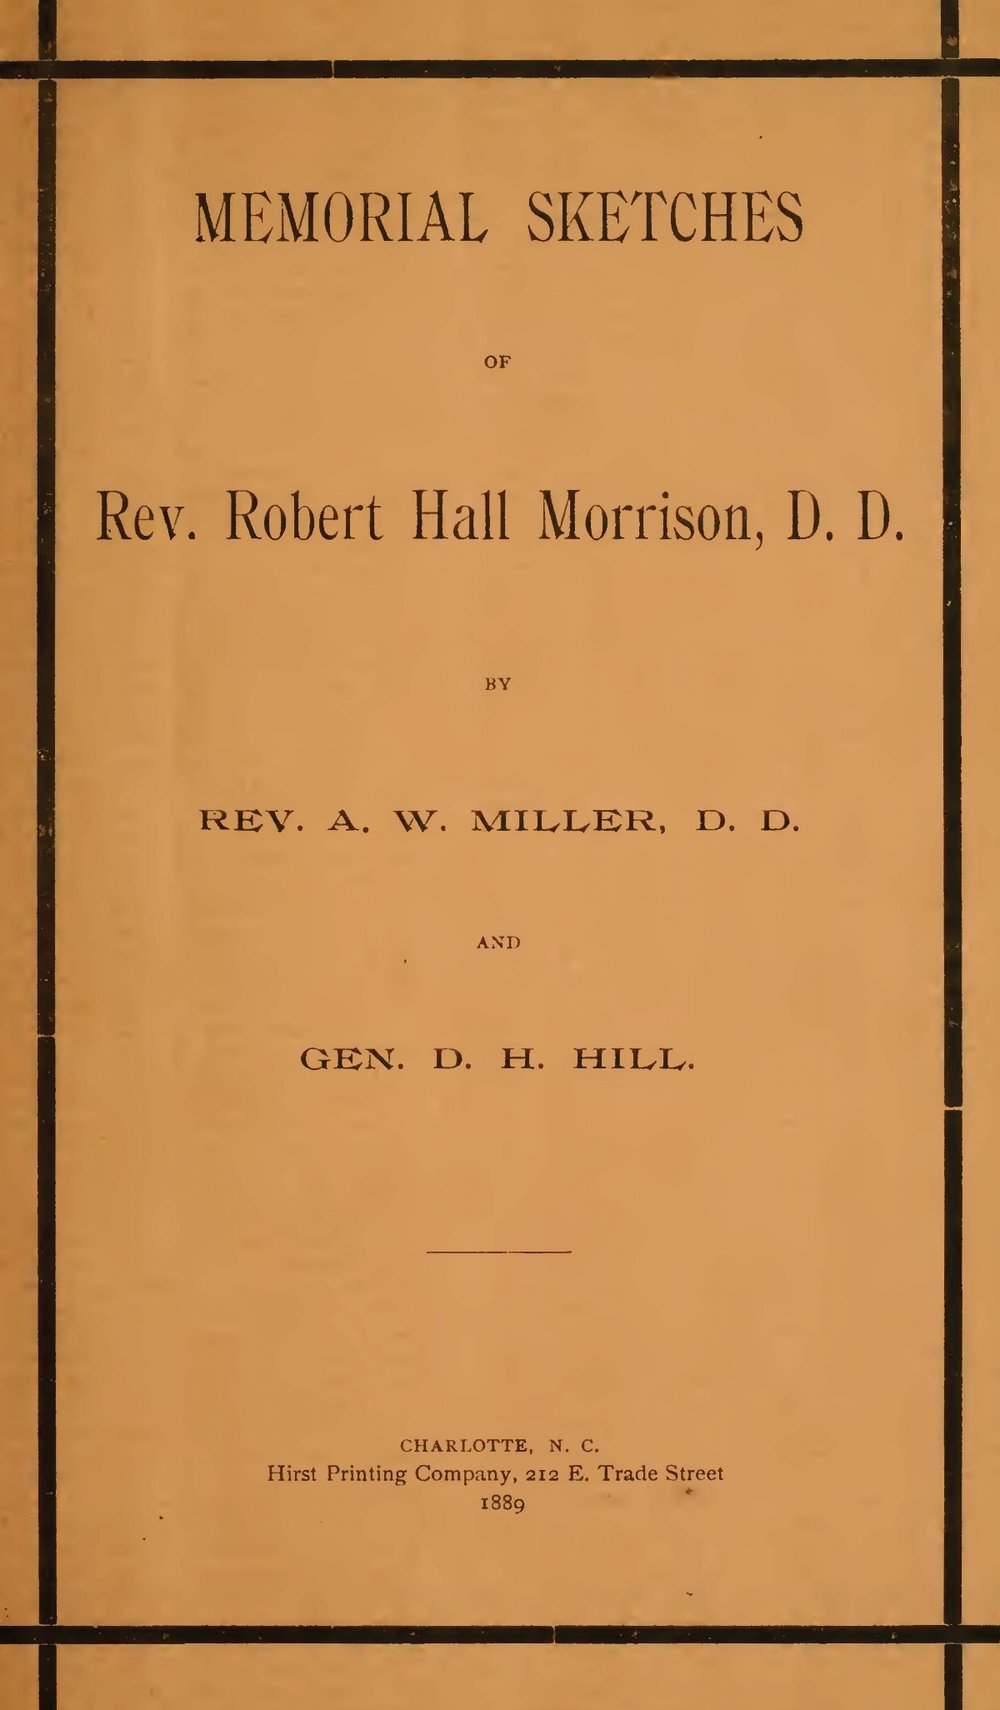 Hill, Daniel Harvey, Memorial Sketches of Rev. Robert Hall Morrison, D.D. Title Page.jpg